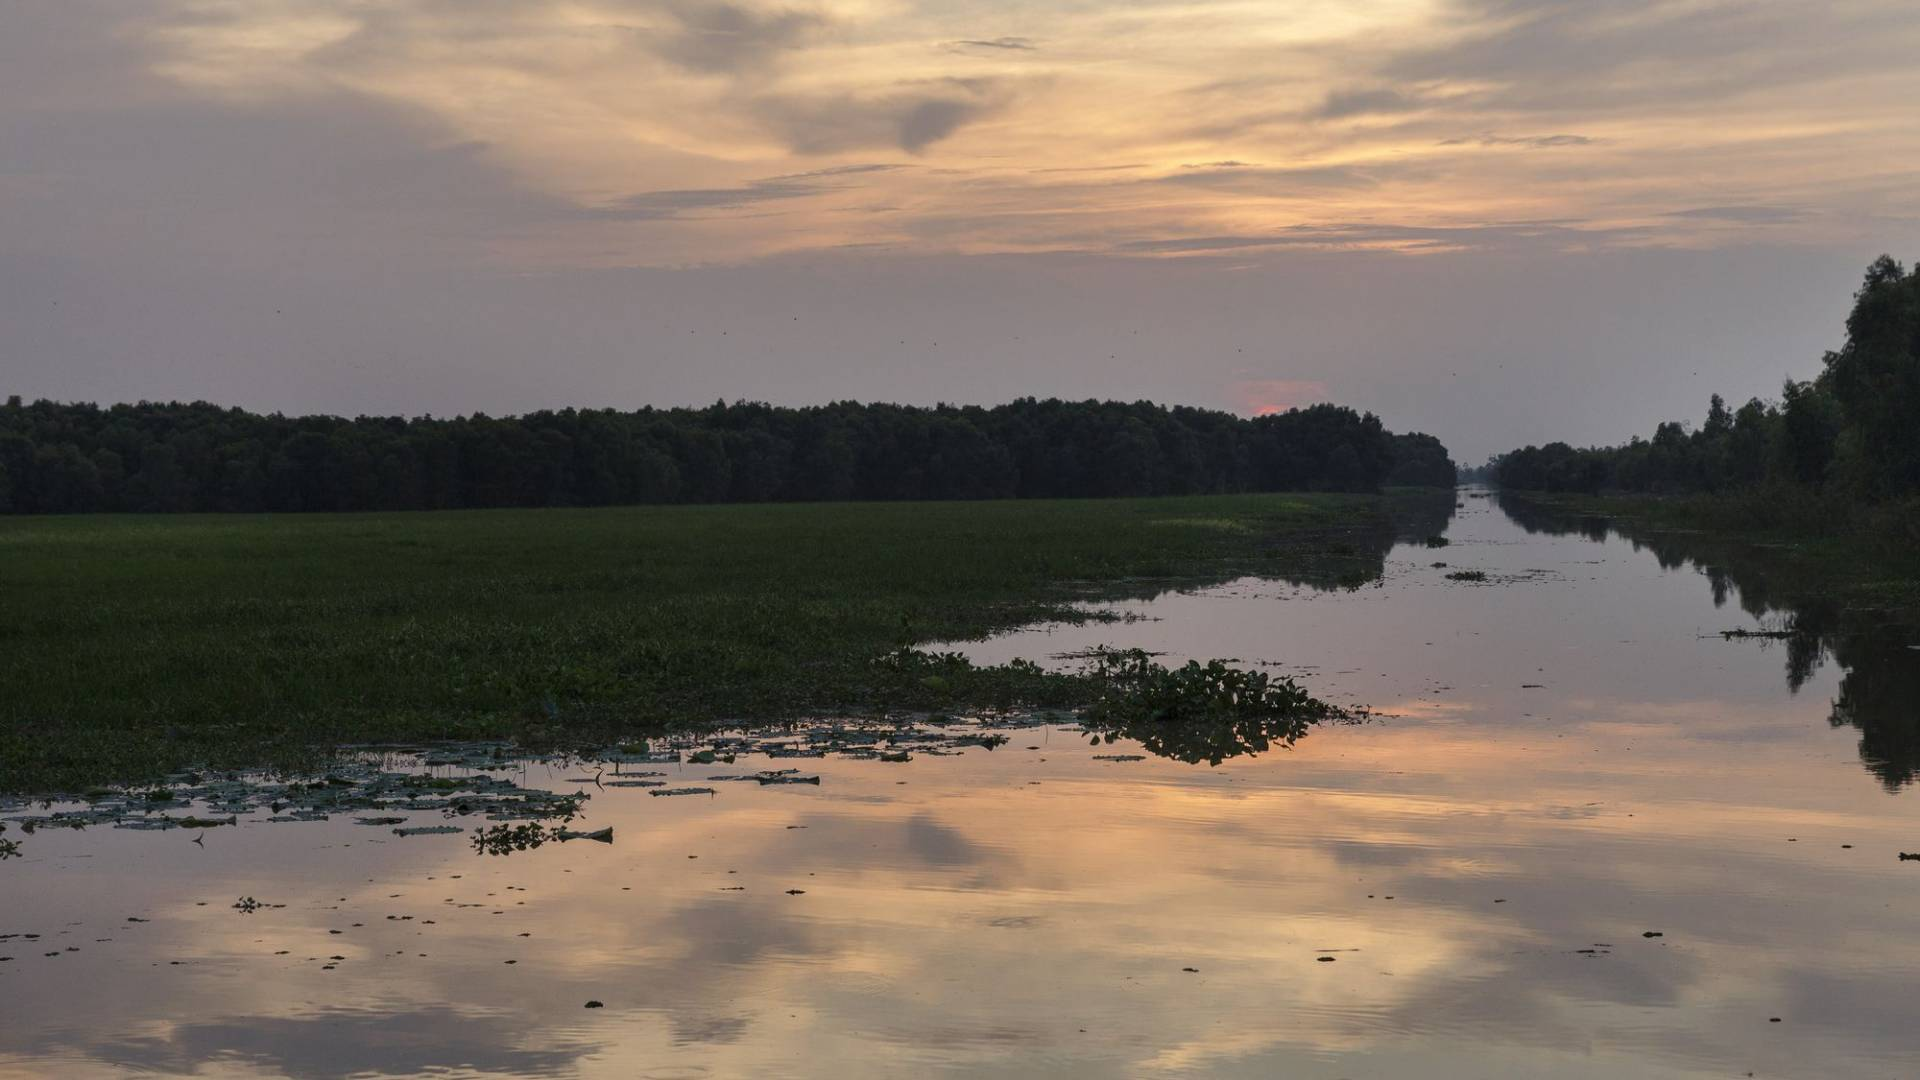 Tramonto sul fiume Mekong in Tram Chim National Park, il Vietnam